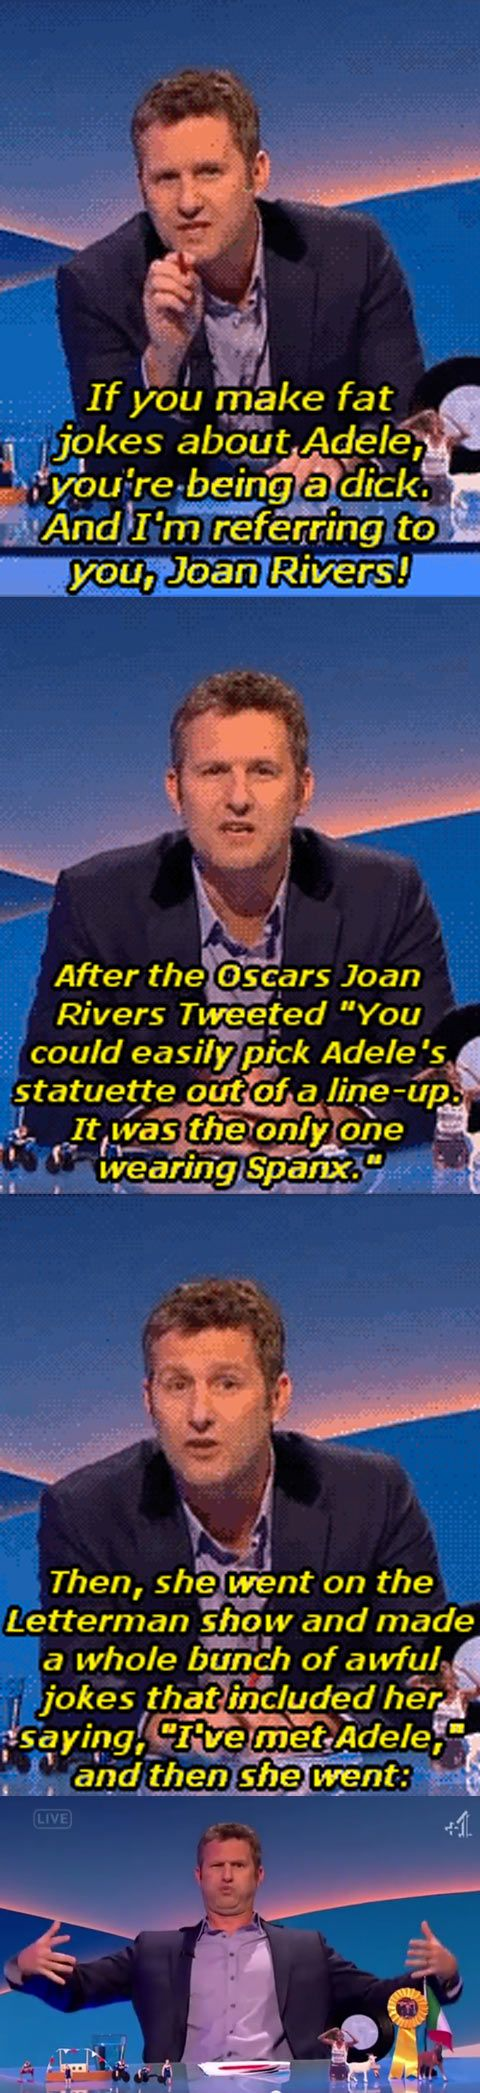 While I don't approve of shaming someone who shames others, I would have probably said the same thing to Joan Rivers...